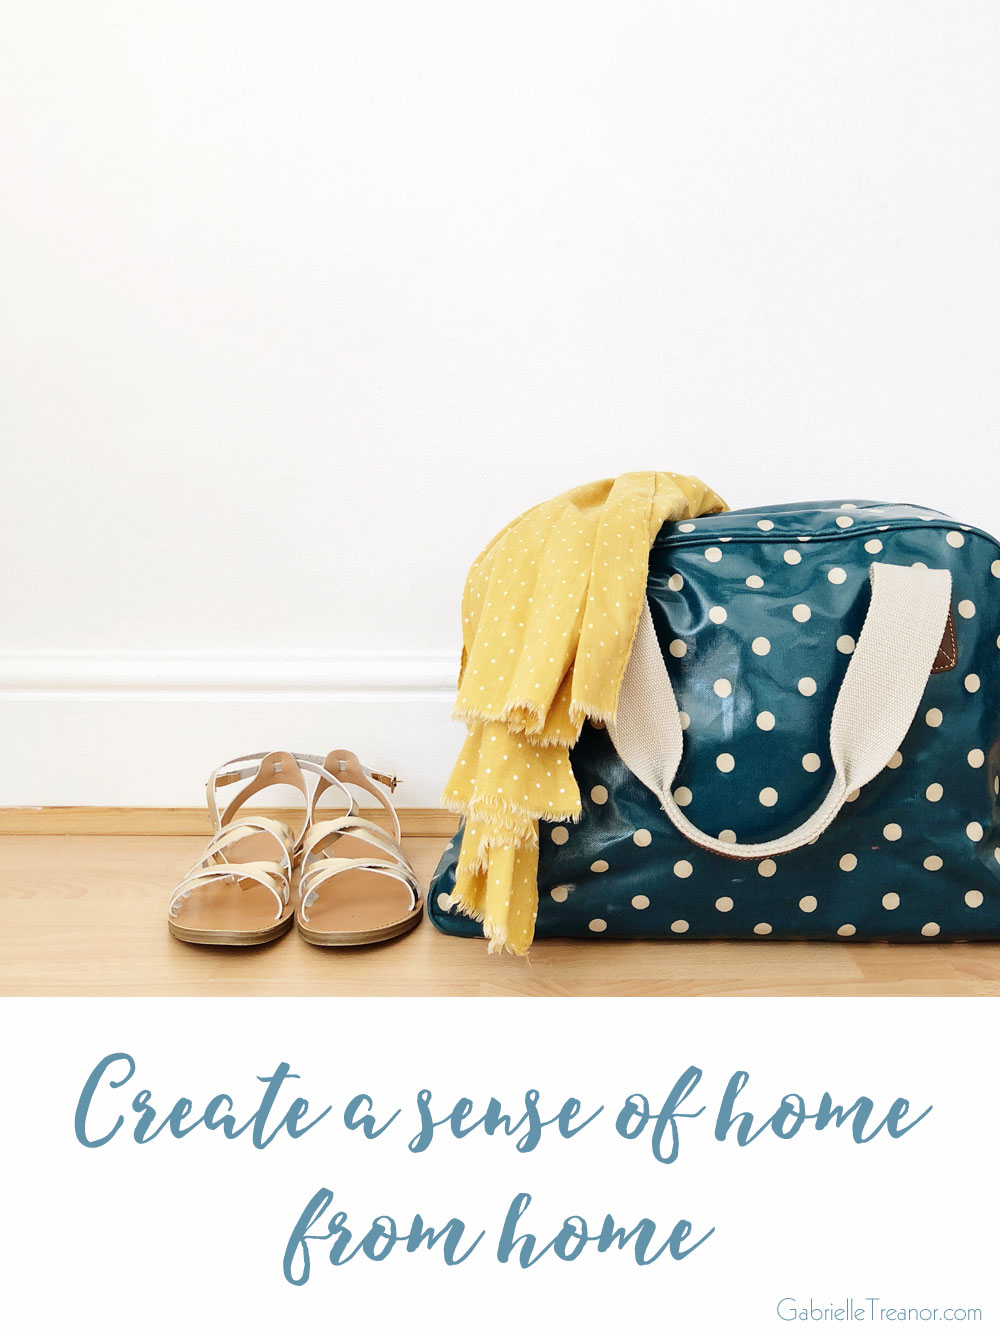 Create a sense of home from home